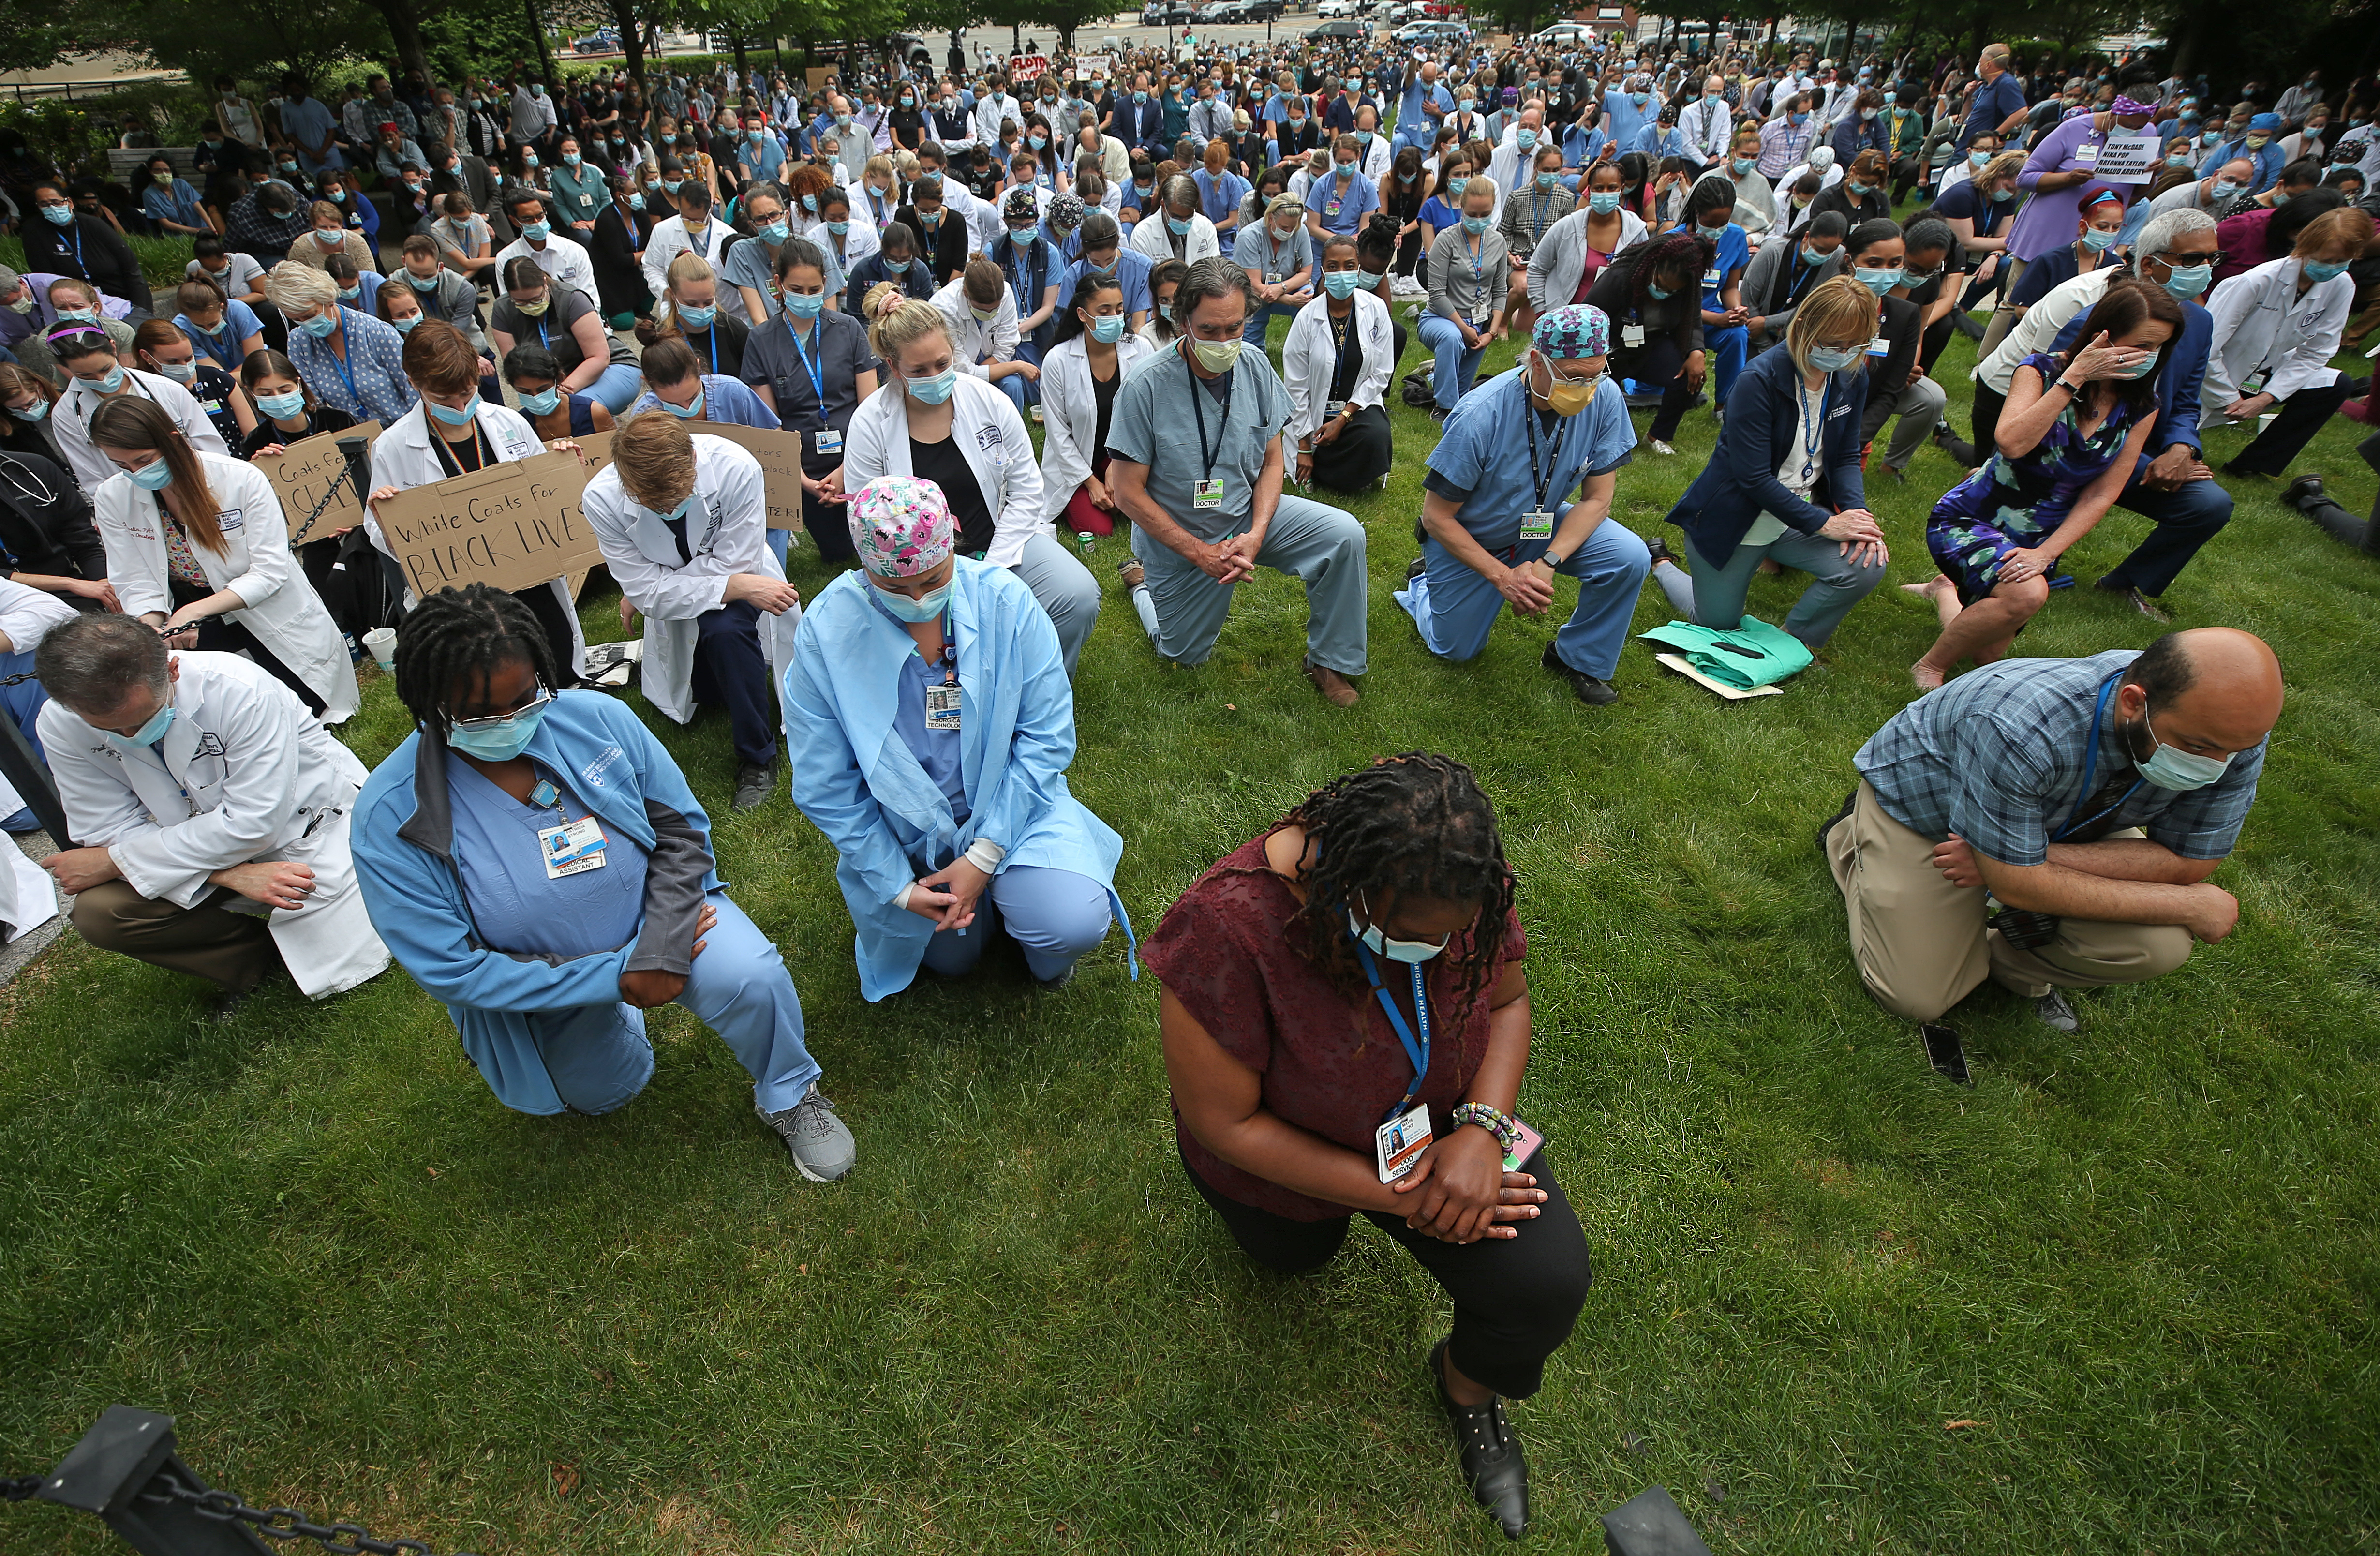 BOSTON, MA - JUNE 7: On the lawn at the Brigham and Women's Hospital in Boston, Members of the Brigham and Women's community kneel during a vigil in memory of George Floyd and reflection on racial injustice on June 5, 2020. (Photo by David L. Ryan/The Boston Globe via Getty Images)